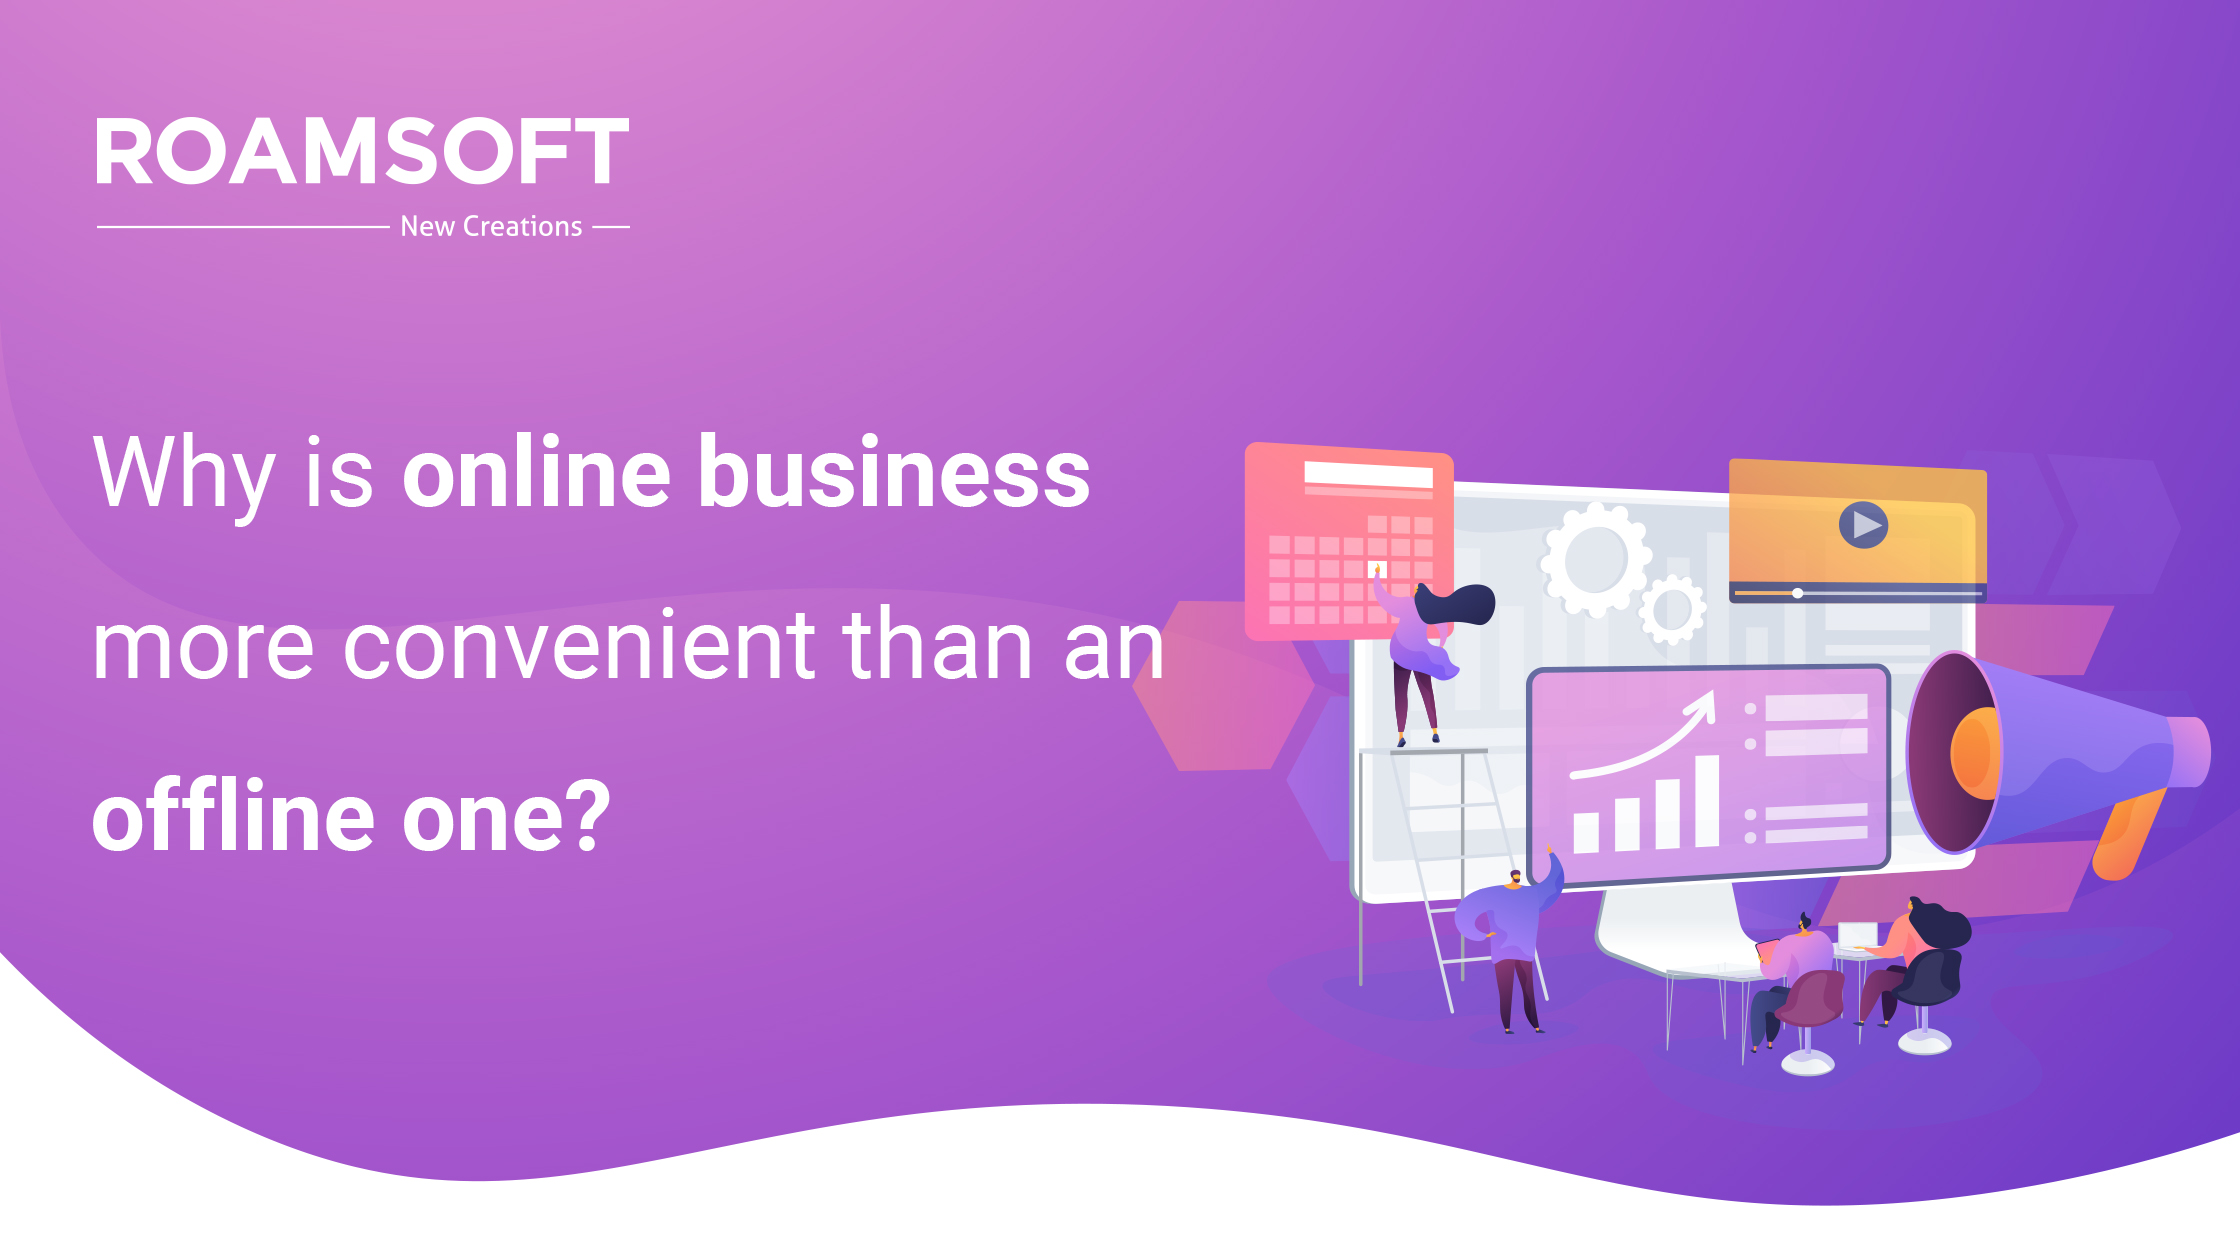 Why is online business more convenient than an offline one?